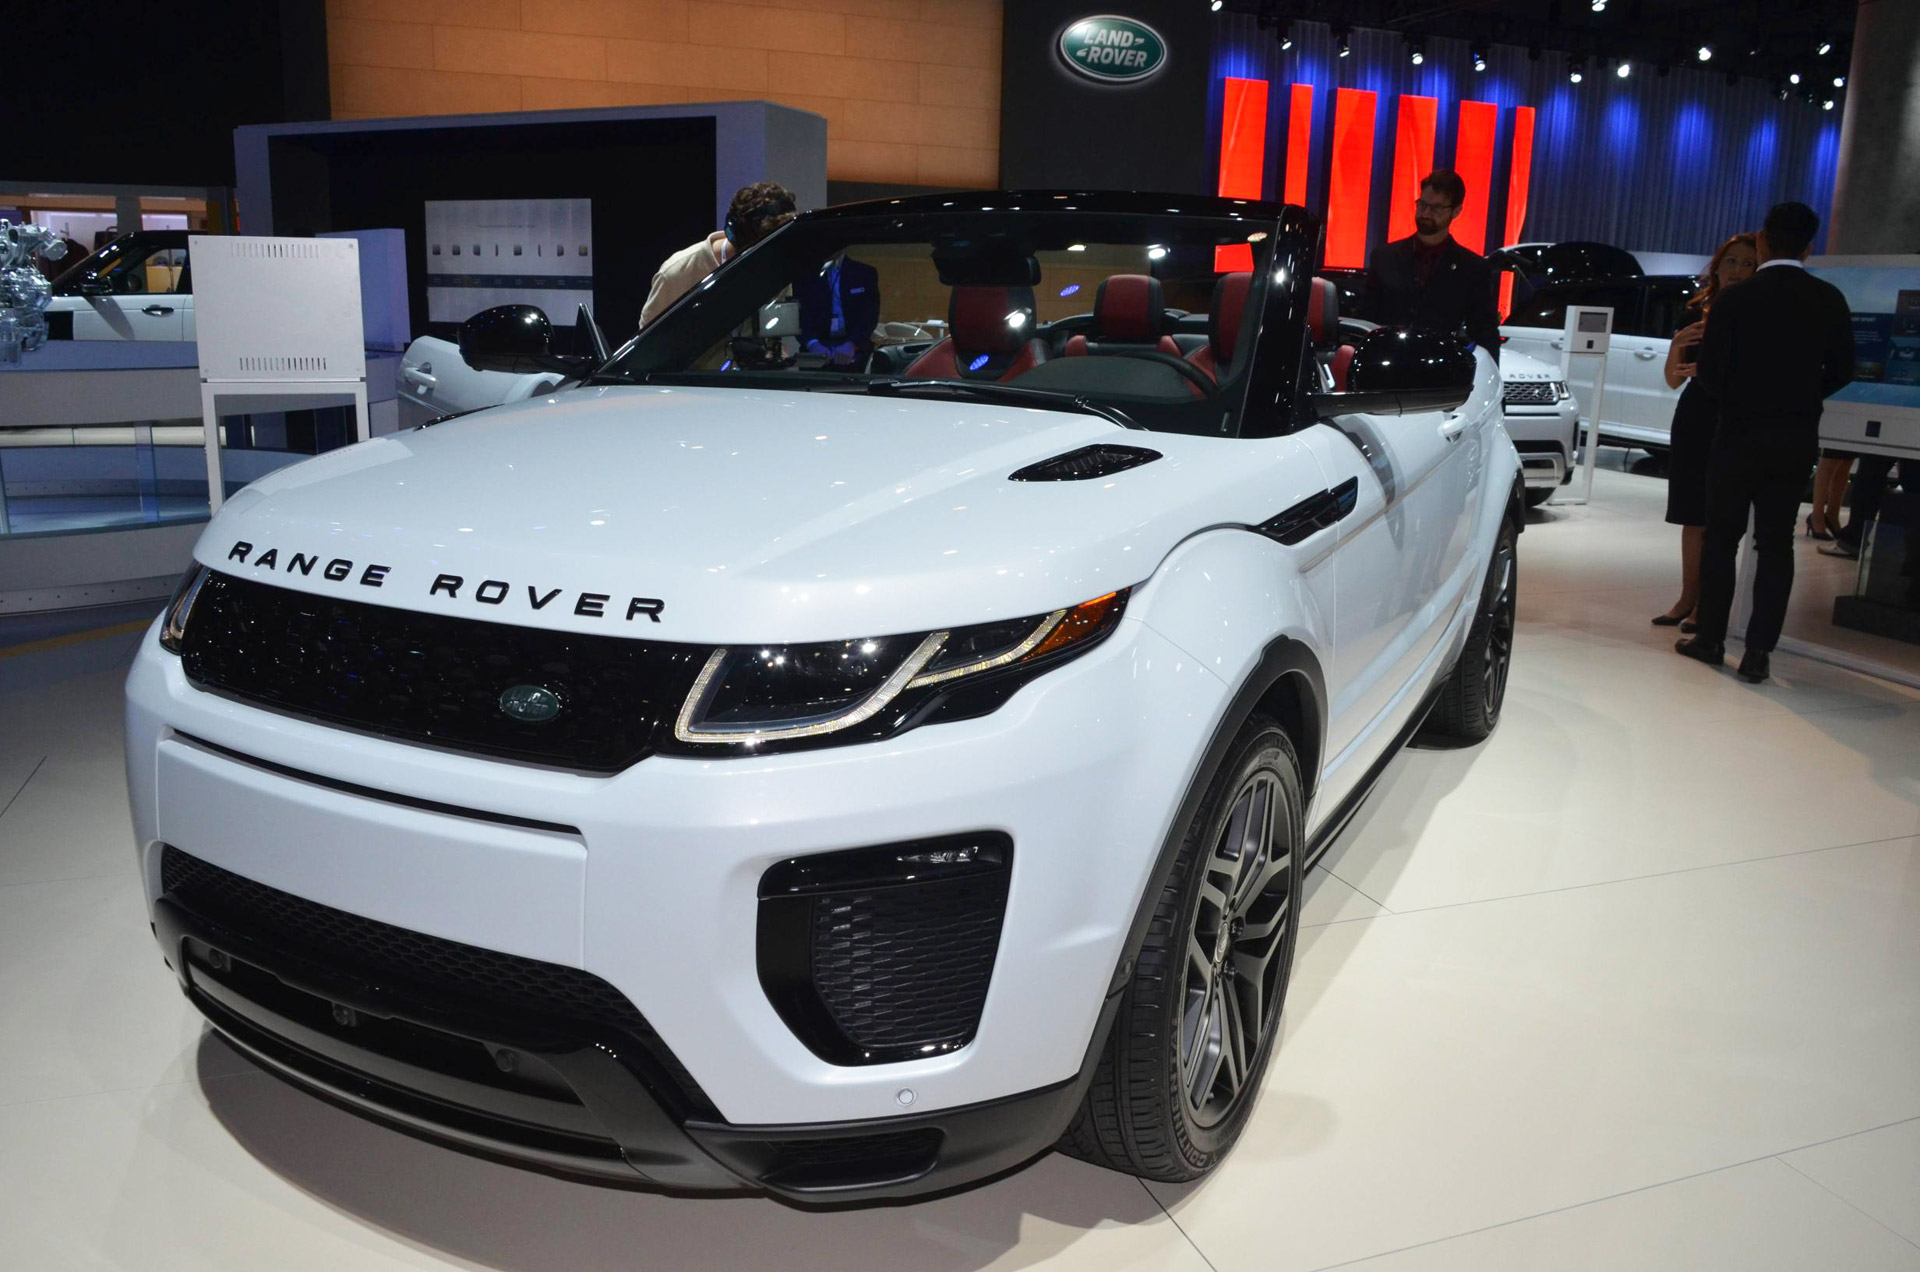 specs land time a top new price rover rr and evoque carves suv prices range landrover drop niche review convertible phoenix